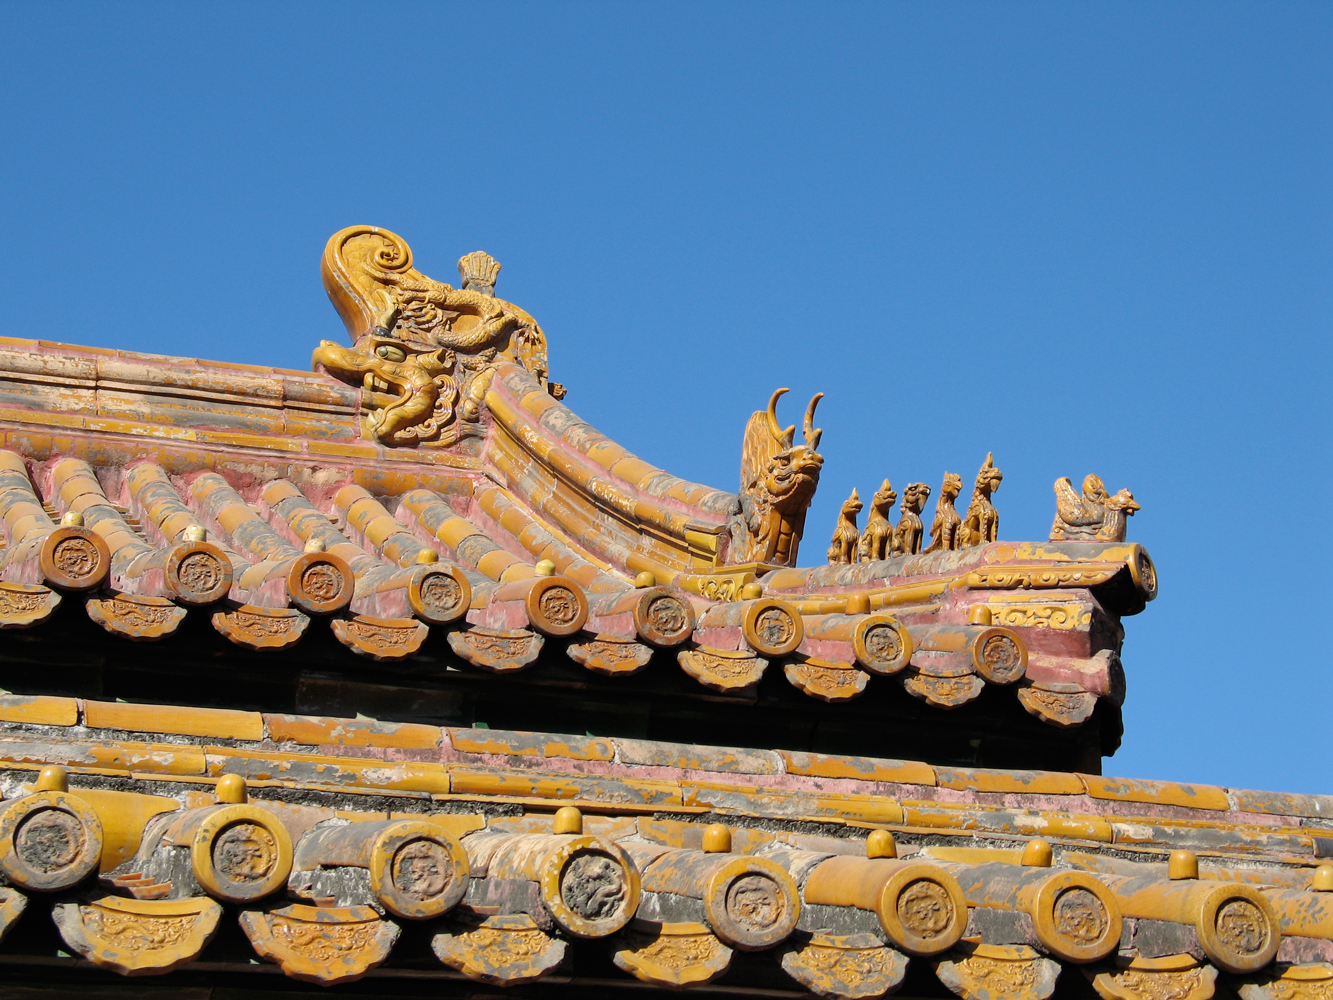 Roof figures on Chinese Imperial Palace, Richard Lund, Shenyang, Liaoning Province